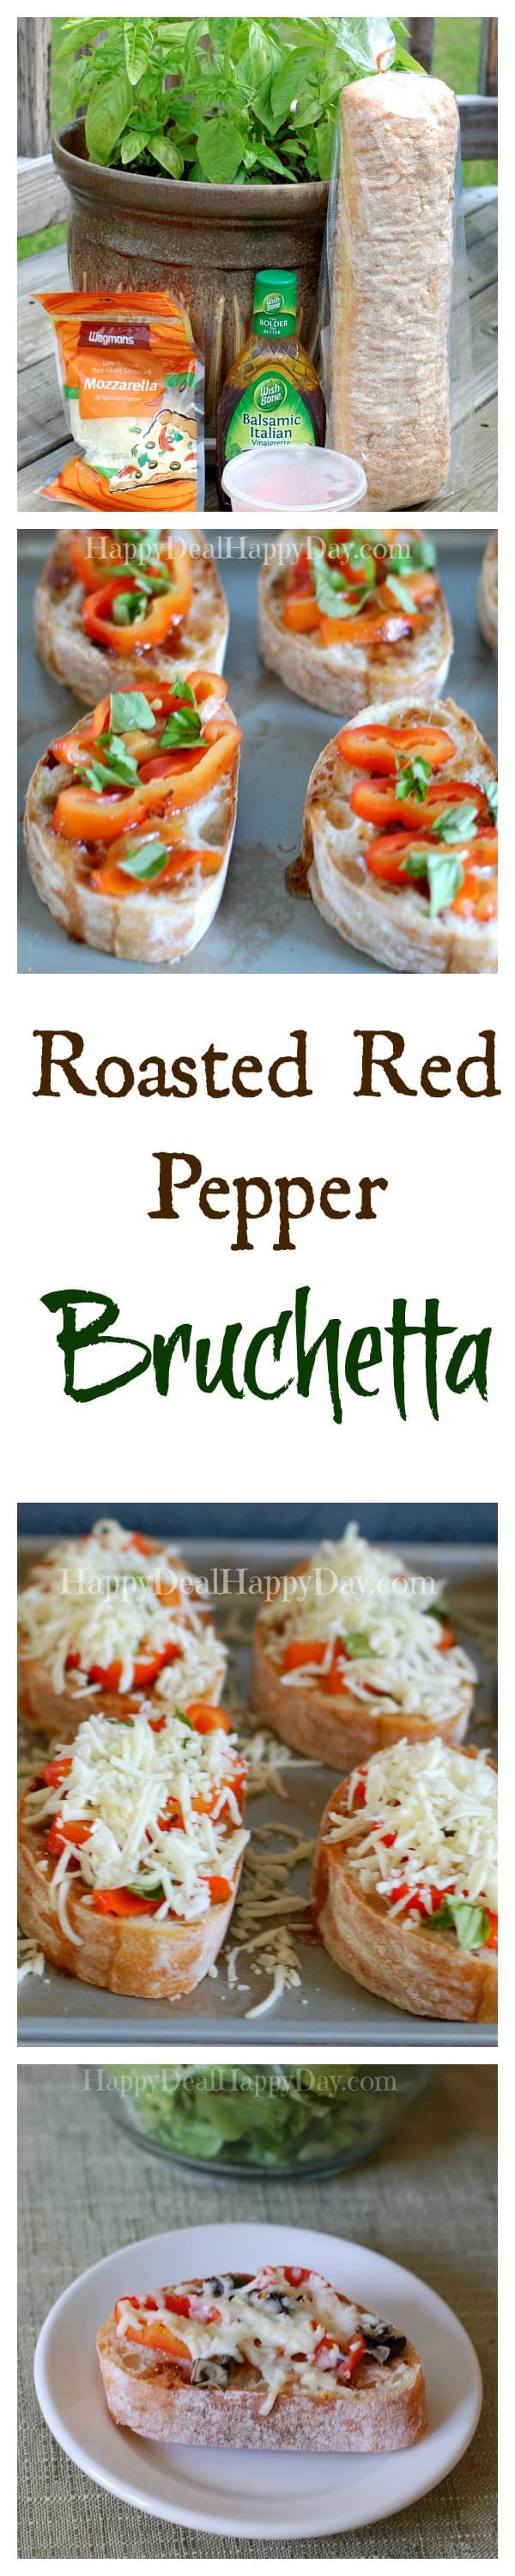 5 Ingredient Roasted Red Pepper Bruchetta!